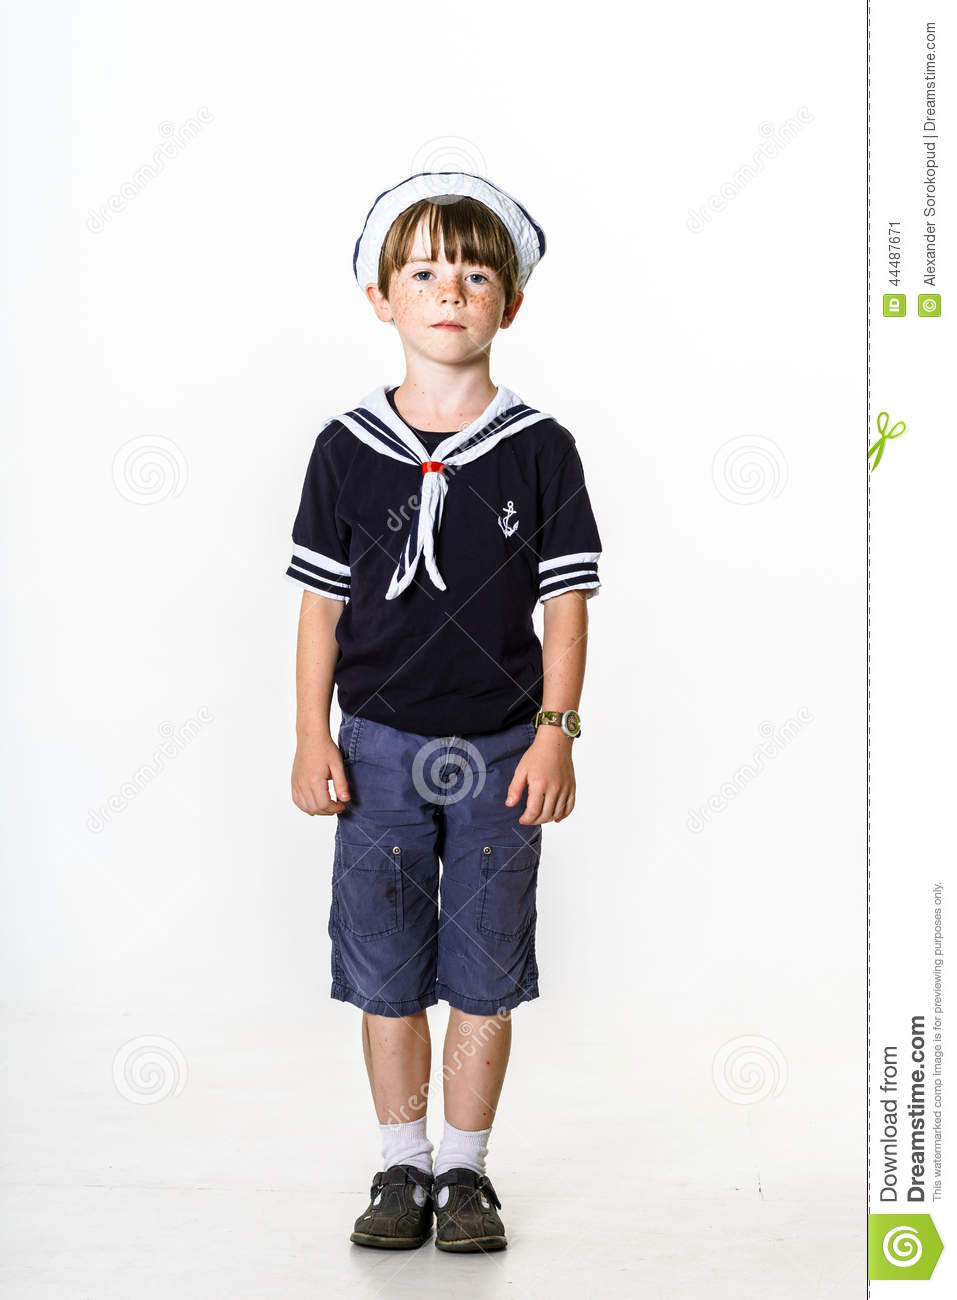 The sailor suit from Shanil Inc is definitely one of the classic styles for a boy's summer wardrobe. An adorable sailor outfit for your little boy by Lito. Sort By. Show. Shop our Boys Sailor Outfits and get ready to put a smile on his face. He will love the outfit and you will love our prices.